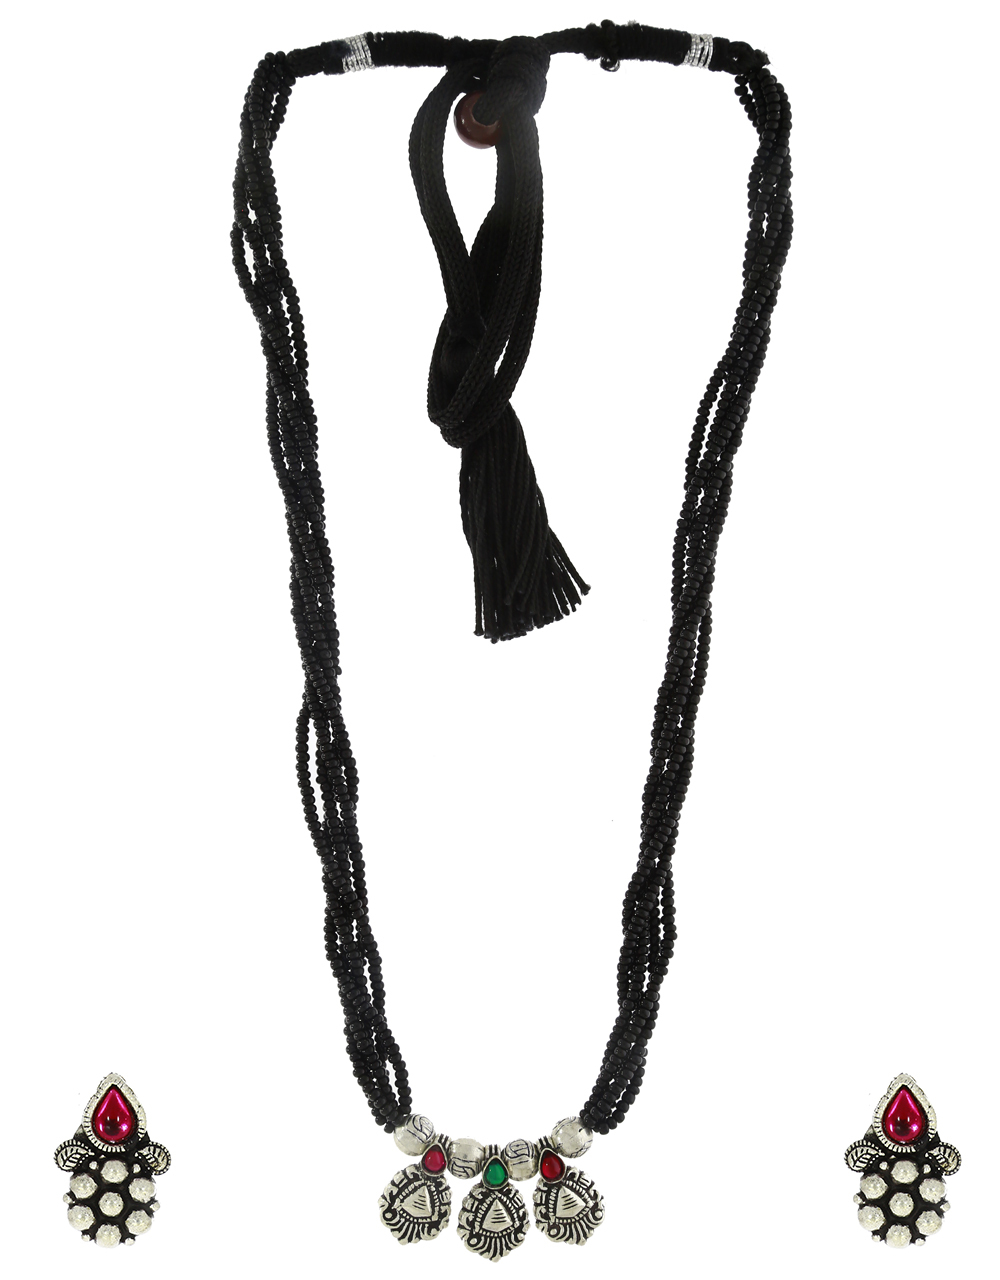 Red-Green Colour Oxidized Mangalsutra Set|Silver jewellery Triabl Necklace Set For Women